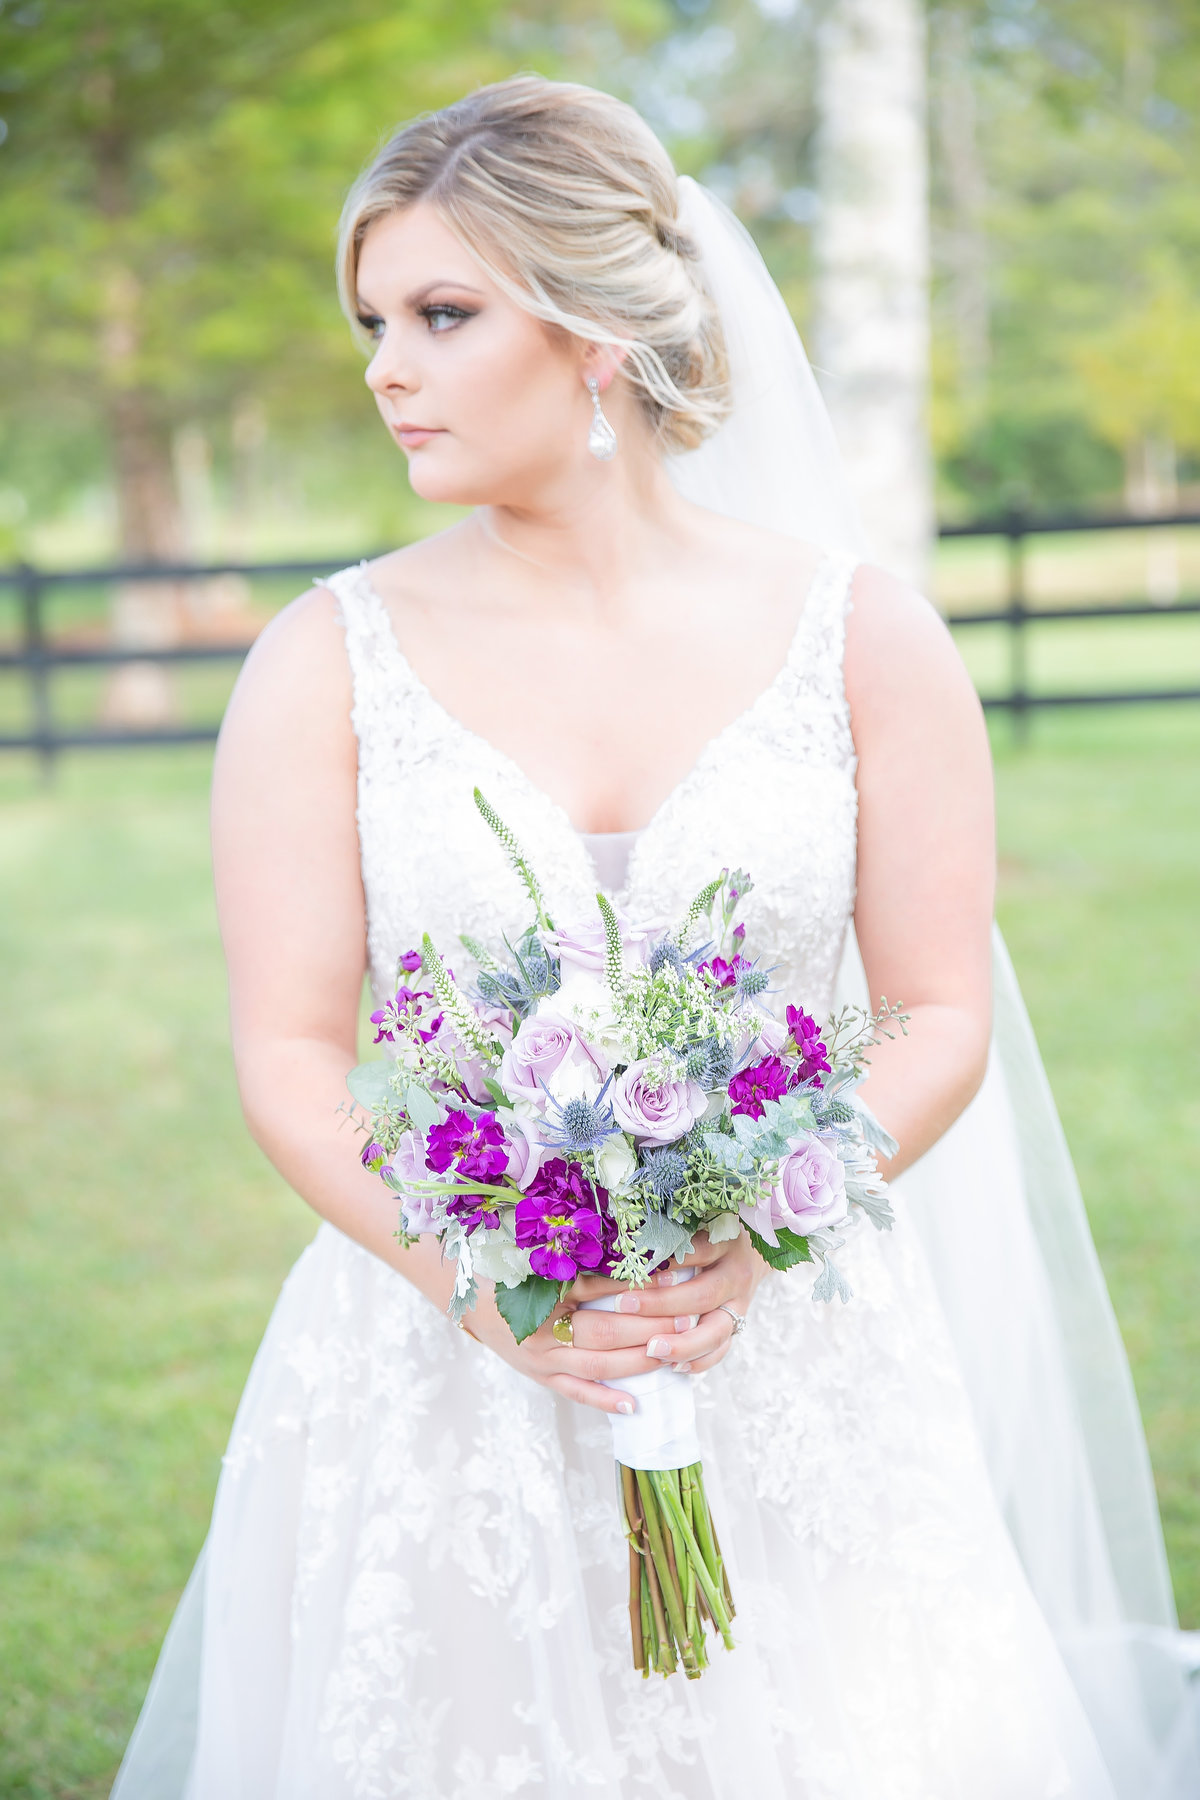 Bride holding bouquet at Acorn Lane Farms in Lucedale MS